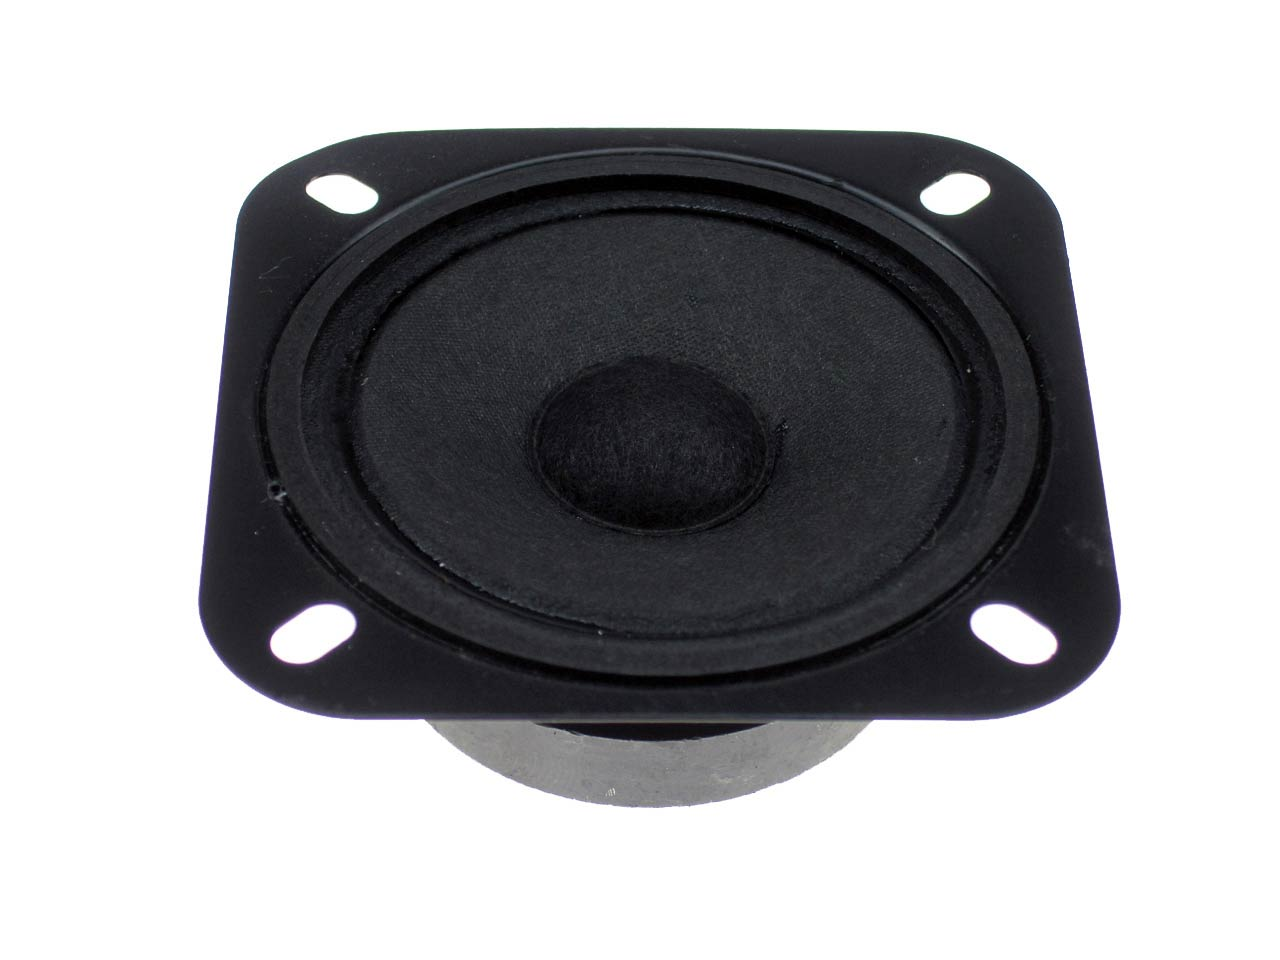 speakers products on this page car stereo installer parts